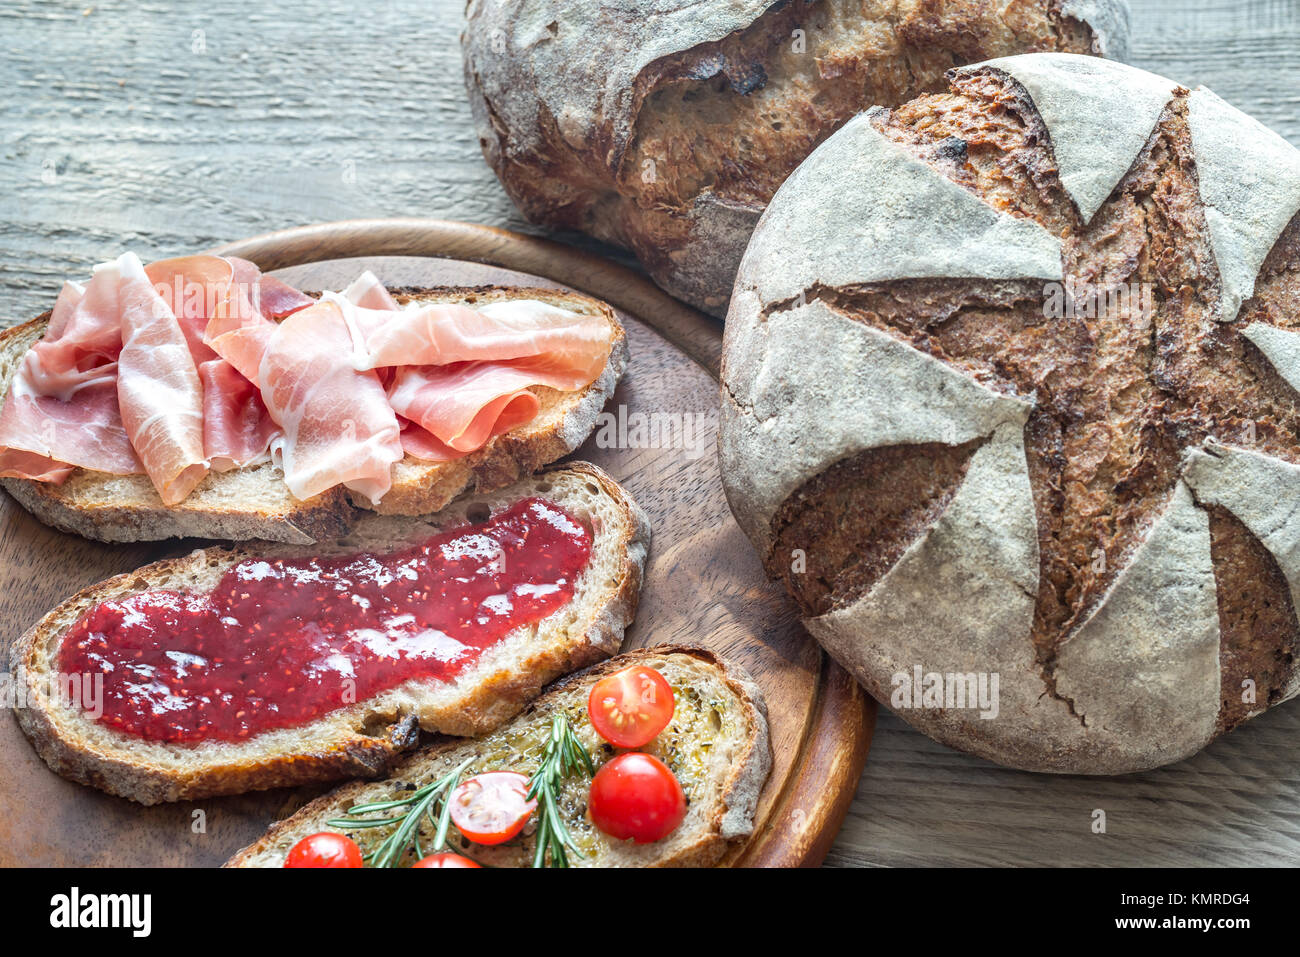 Bruschetta with different toppings on the wooden board - Stock Image